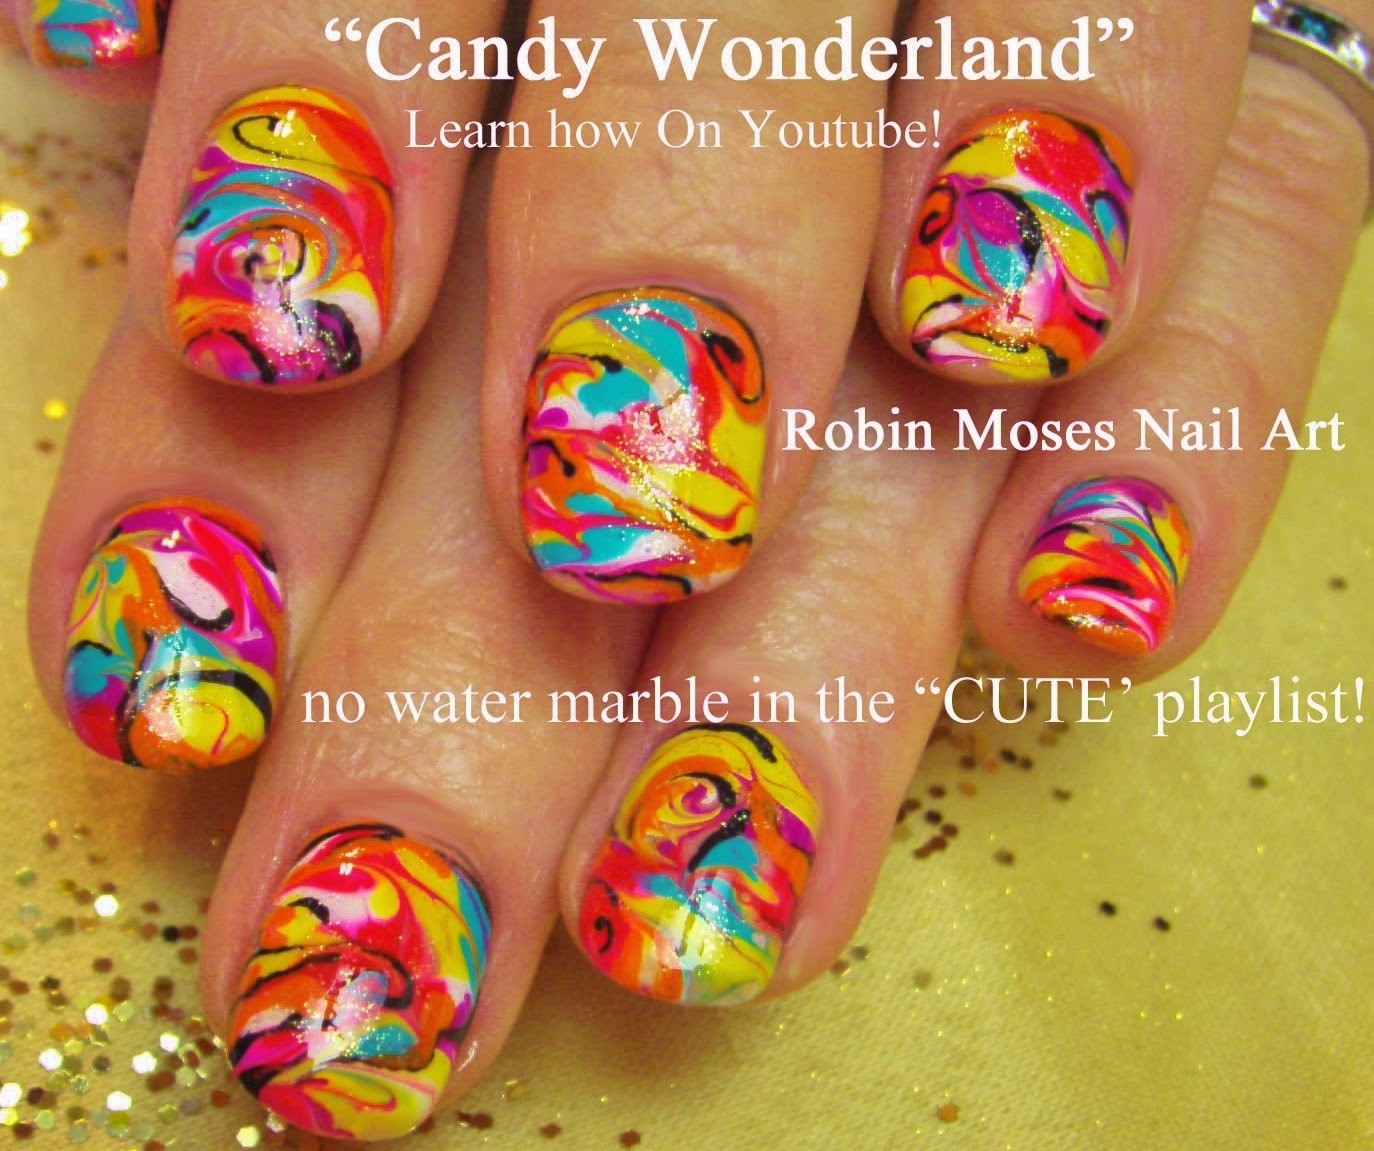 Robin moses nail art summer nails summer designs nail art summer nails summer designs nail art nails neon nails neon bright nails no water marbling marbling nails marble nails diy how to robin prinsesfo Image collections